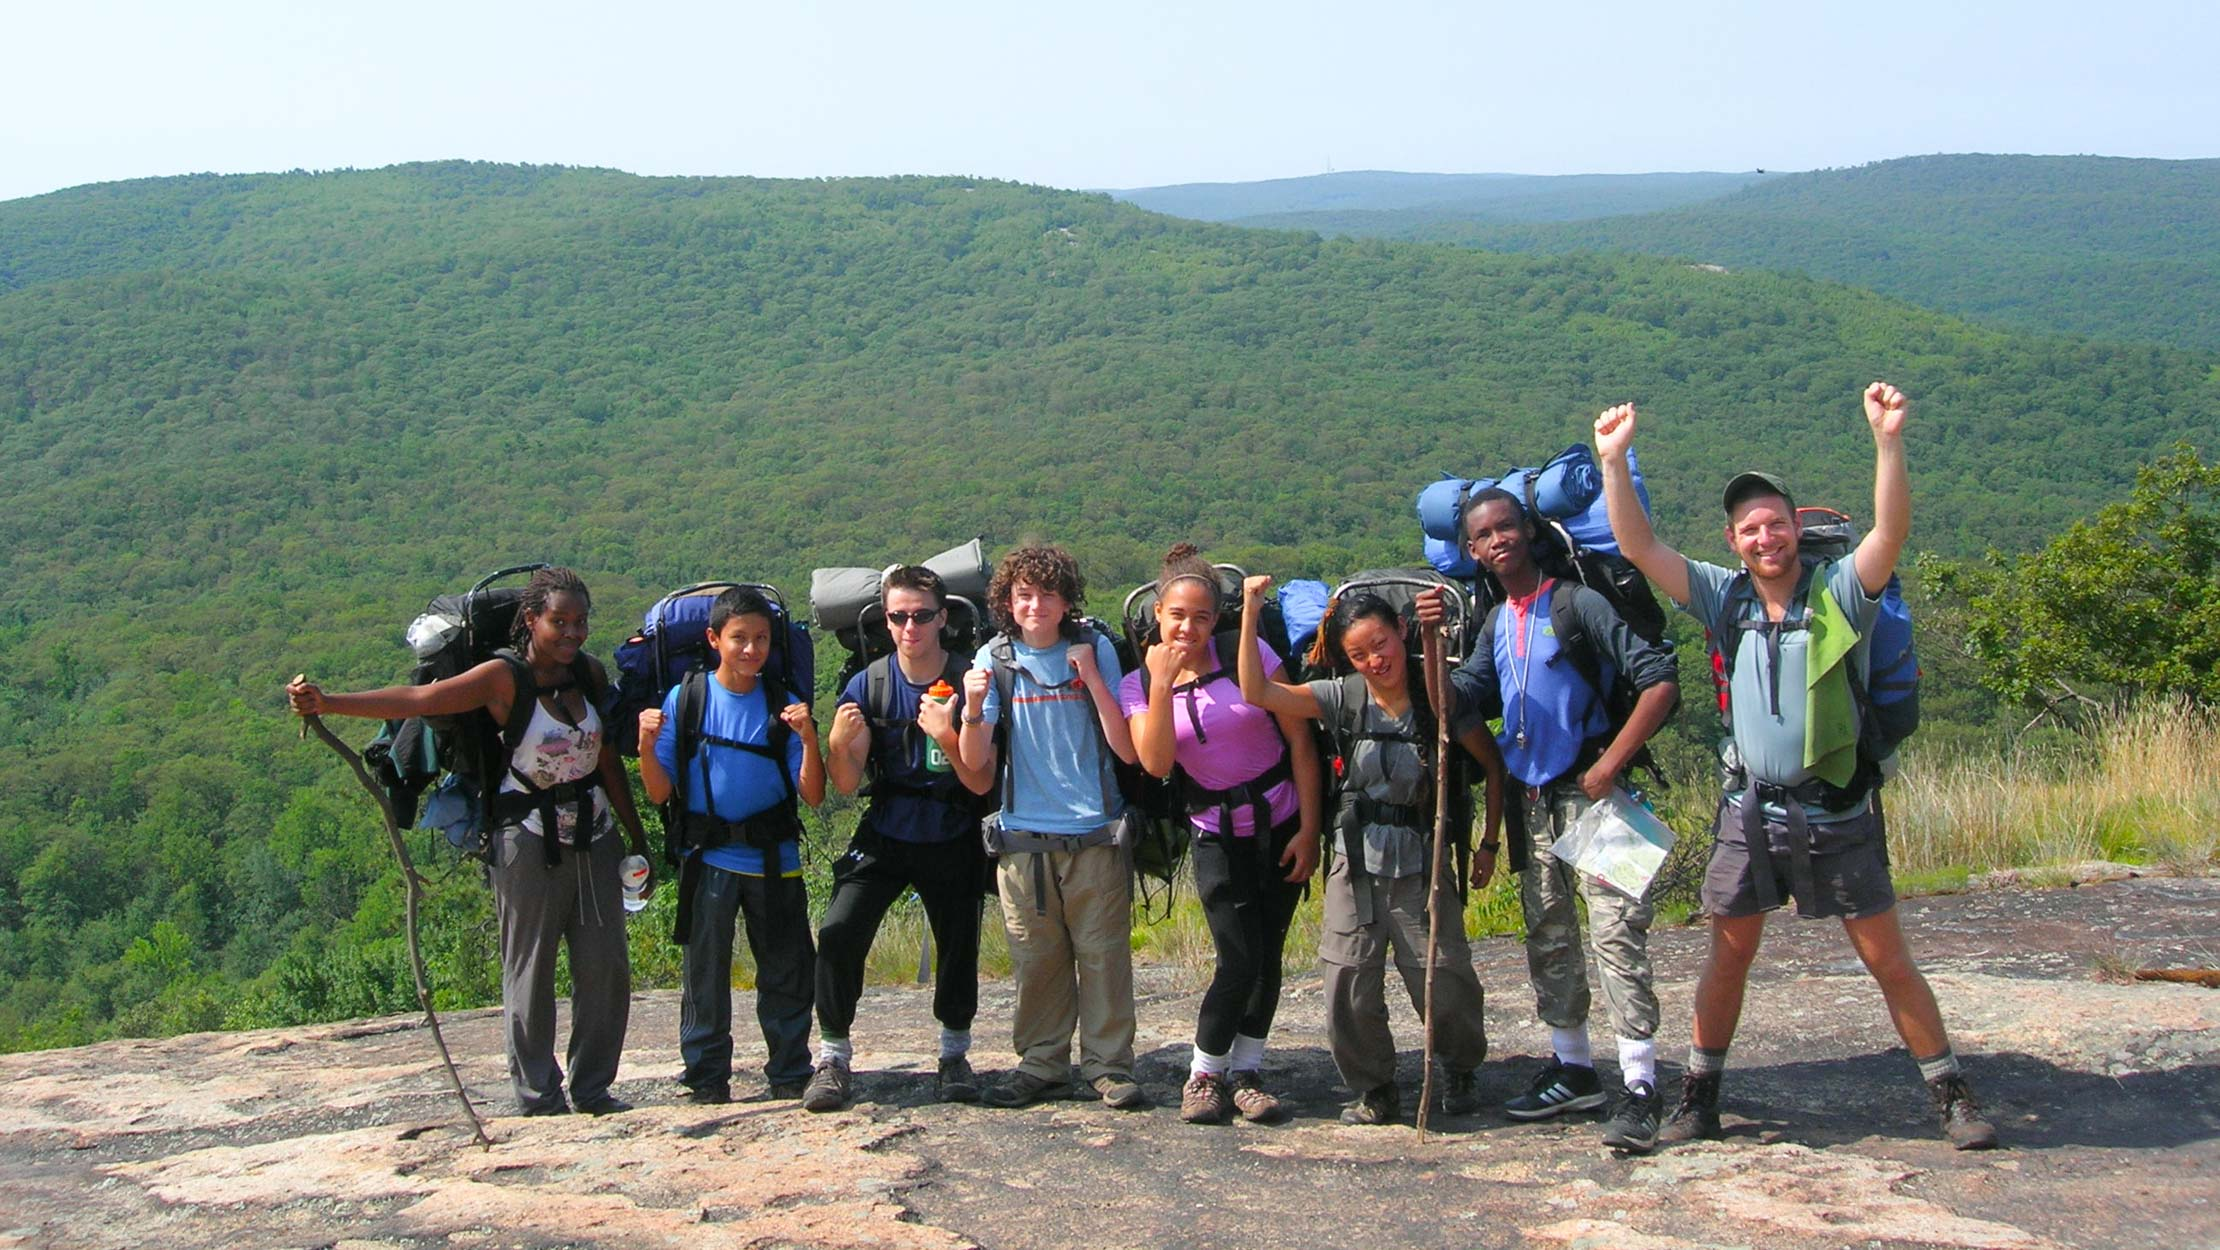 Campers on a camping trip taking a group photo with their backpacks on